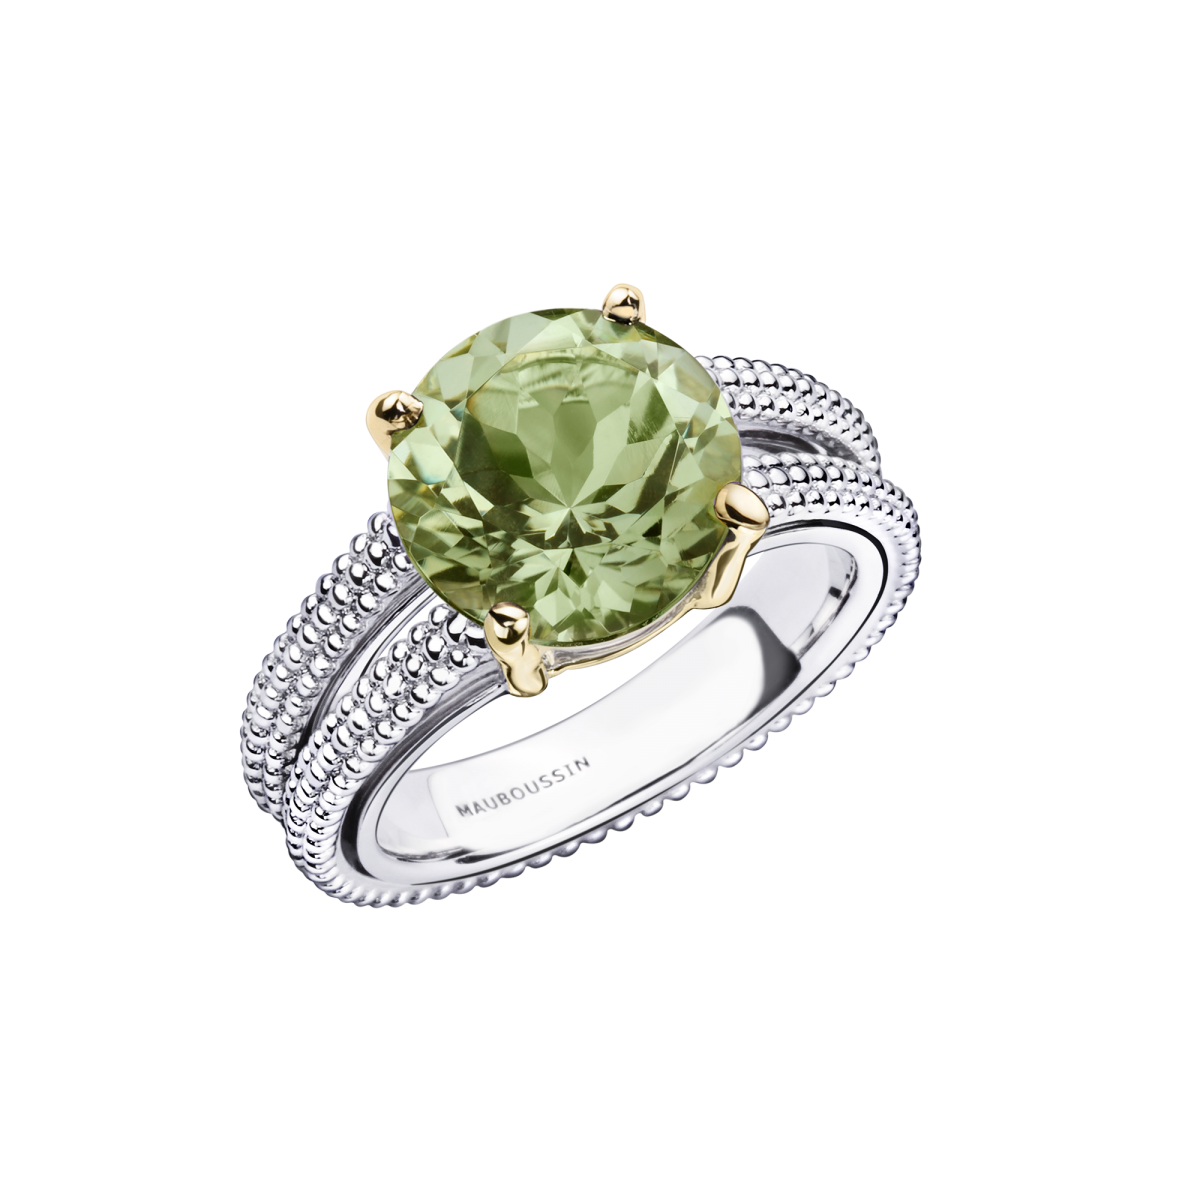 images sites quartz engagement rings green anthonydemarco with brunini gems com statement forbes s colorful